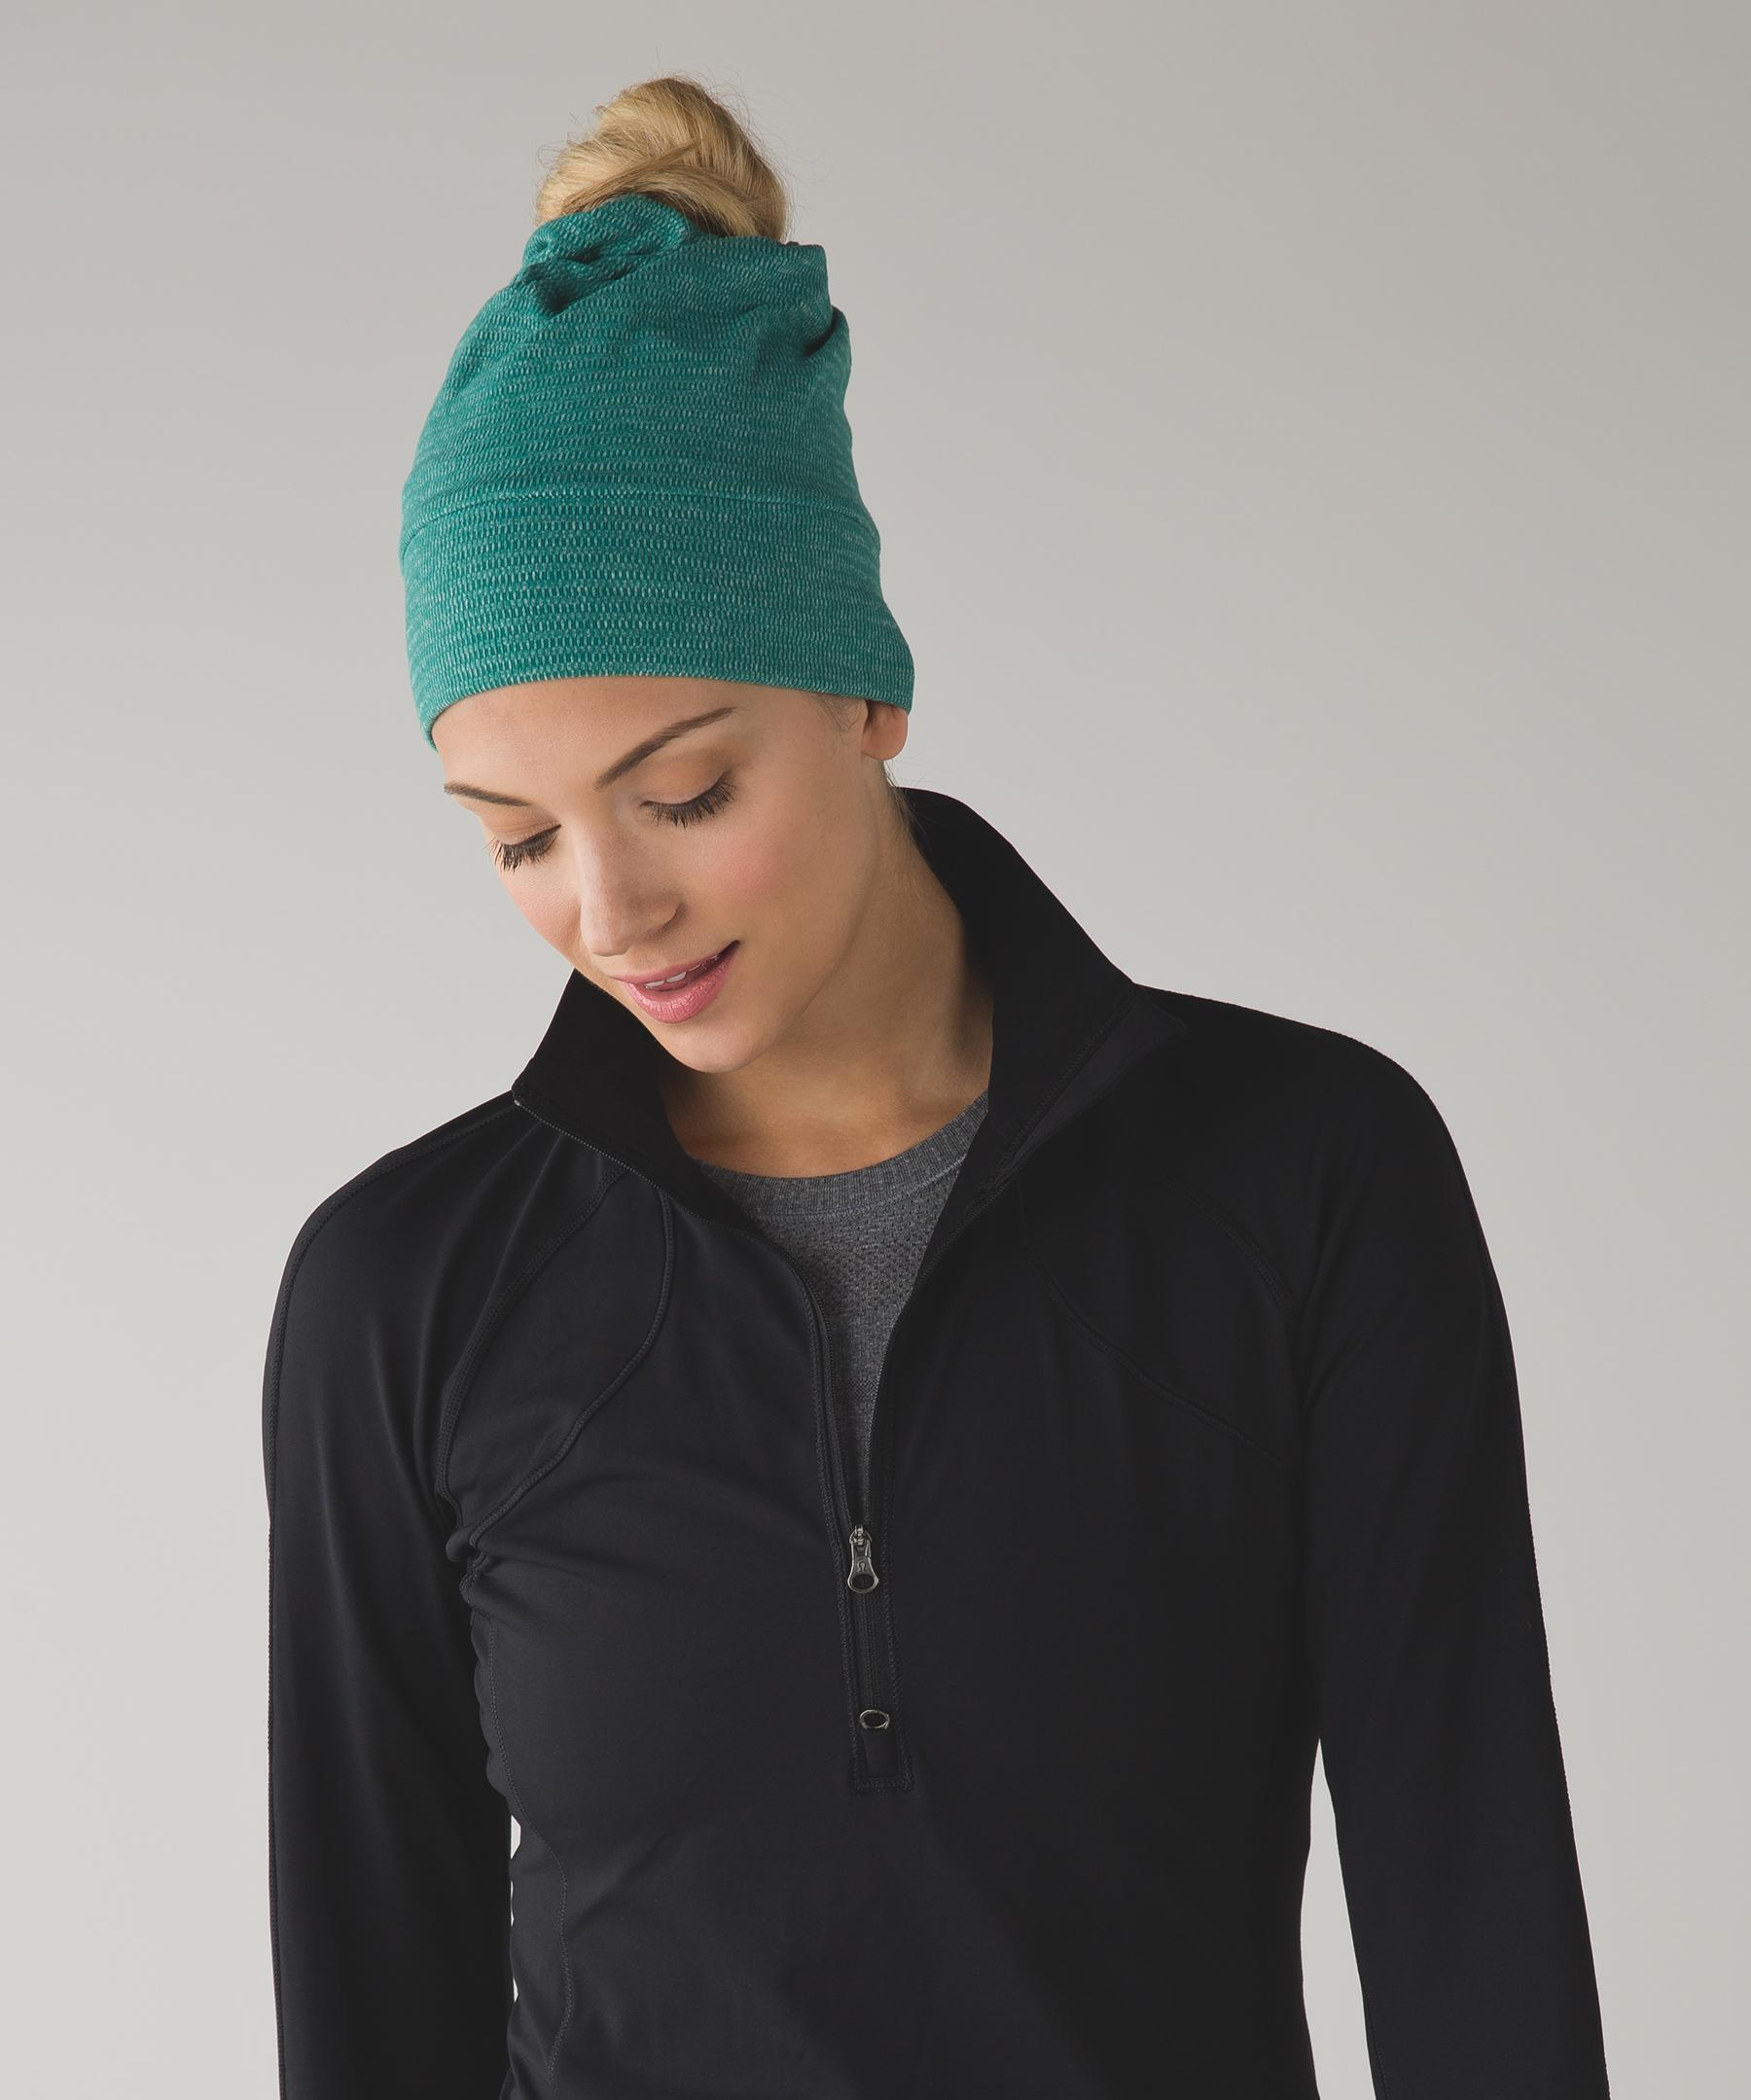 lululemon athletica Top Knot Toque in Green - Lyst 8bea7675d83